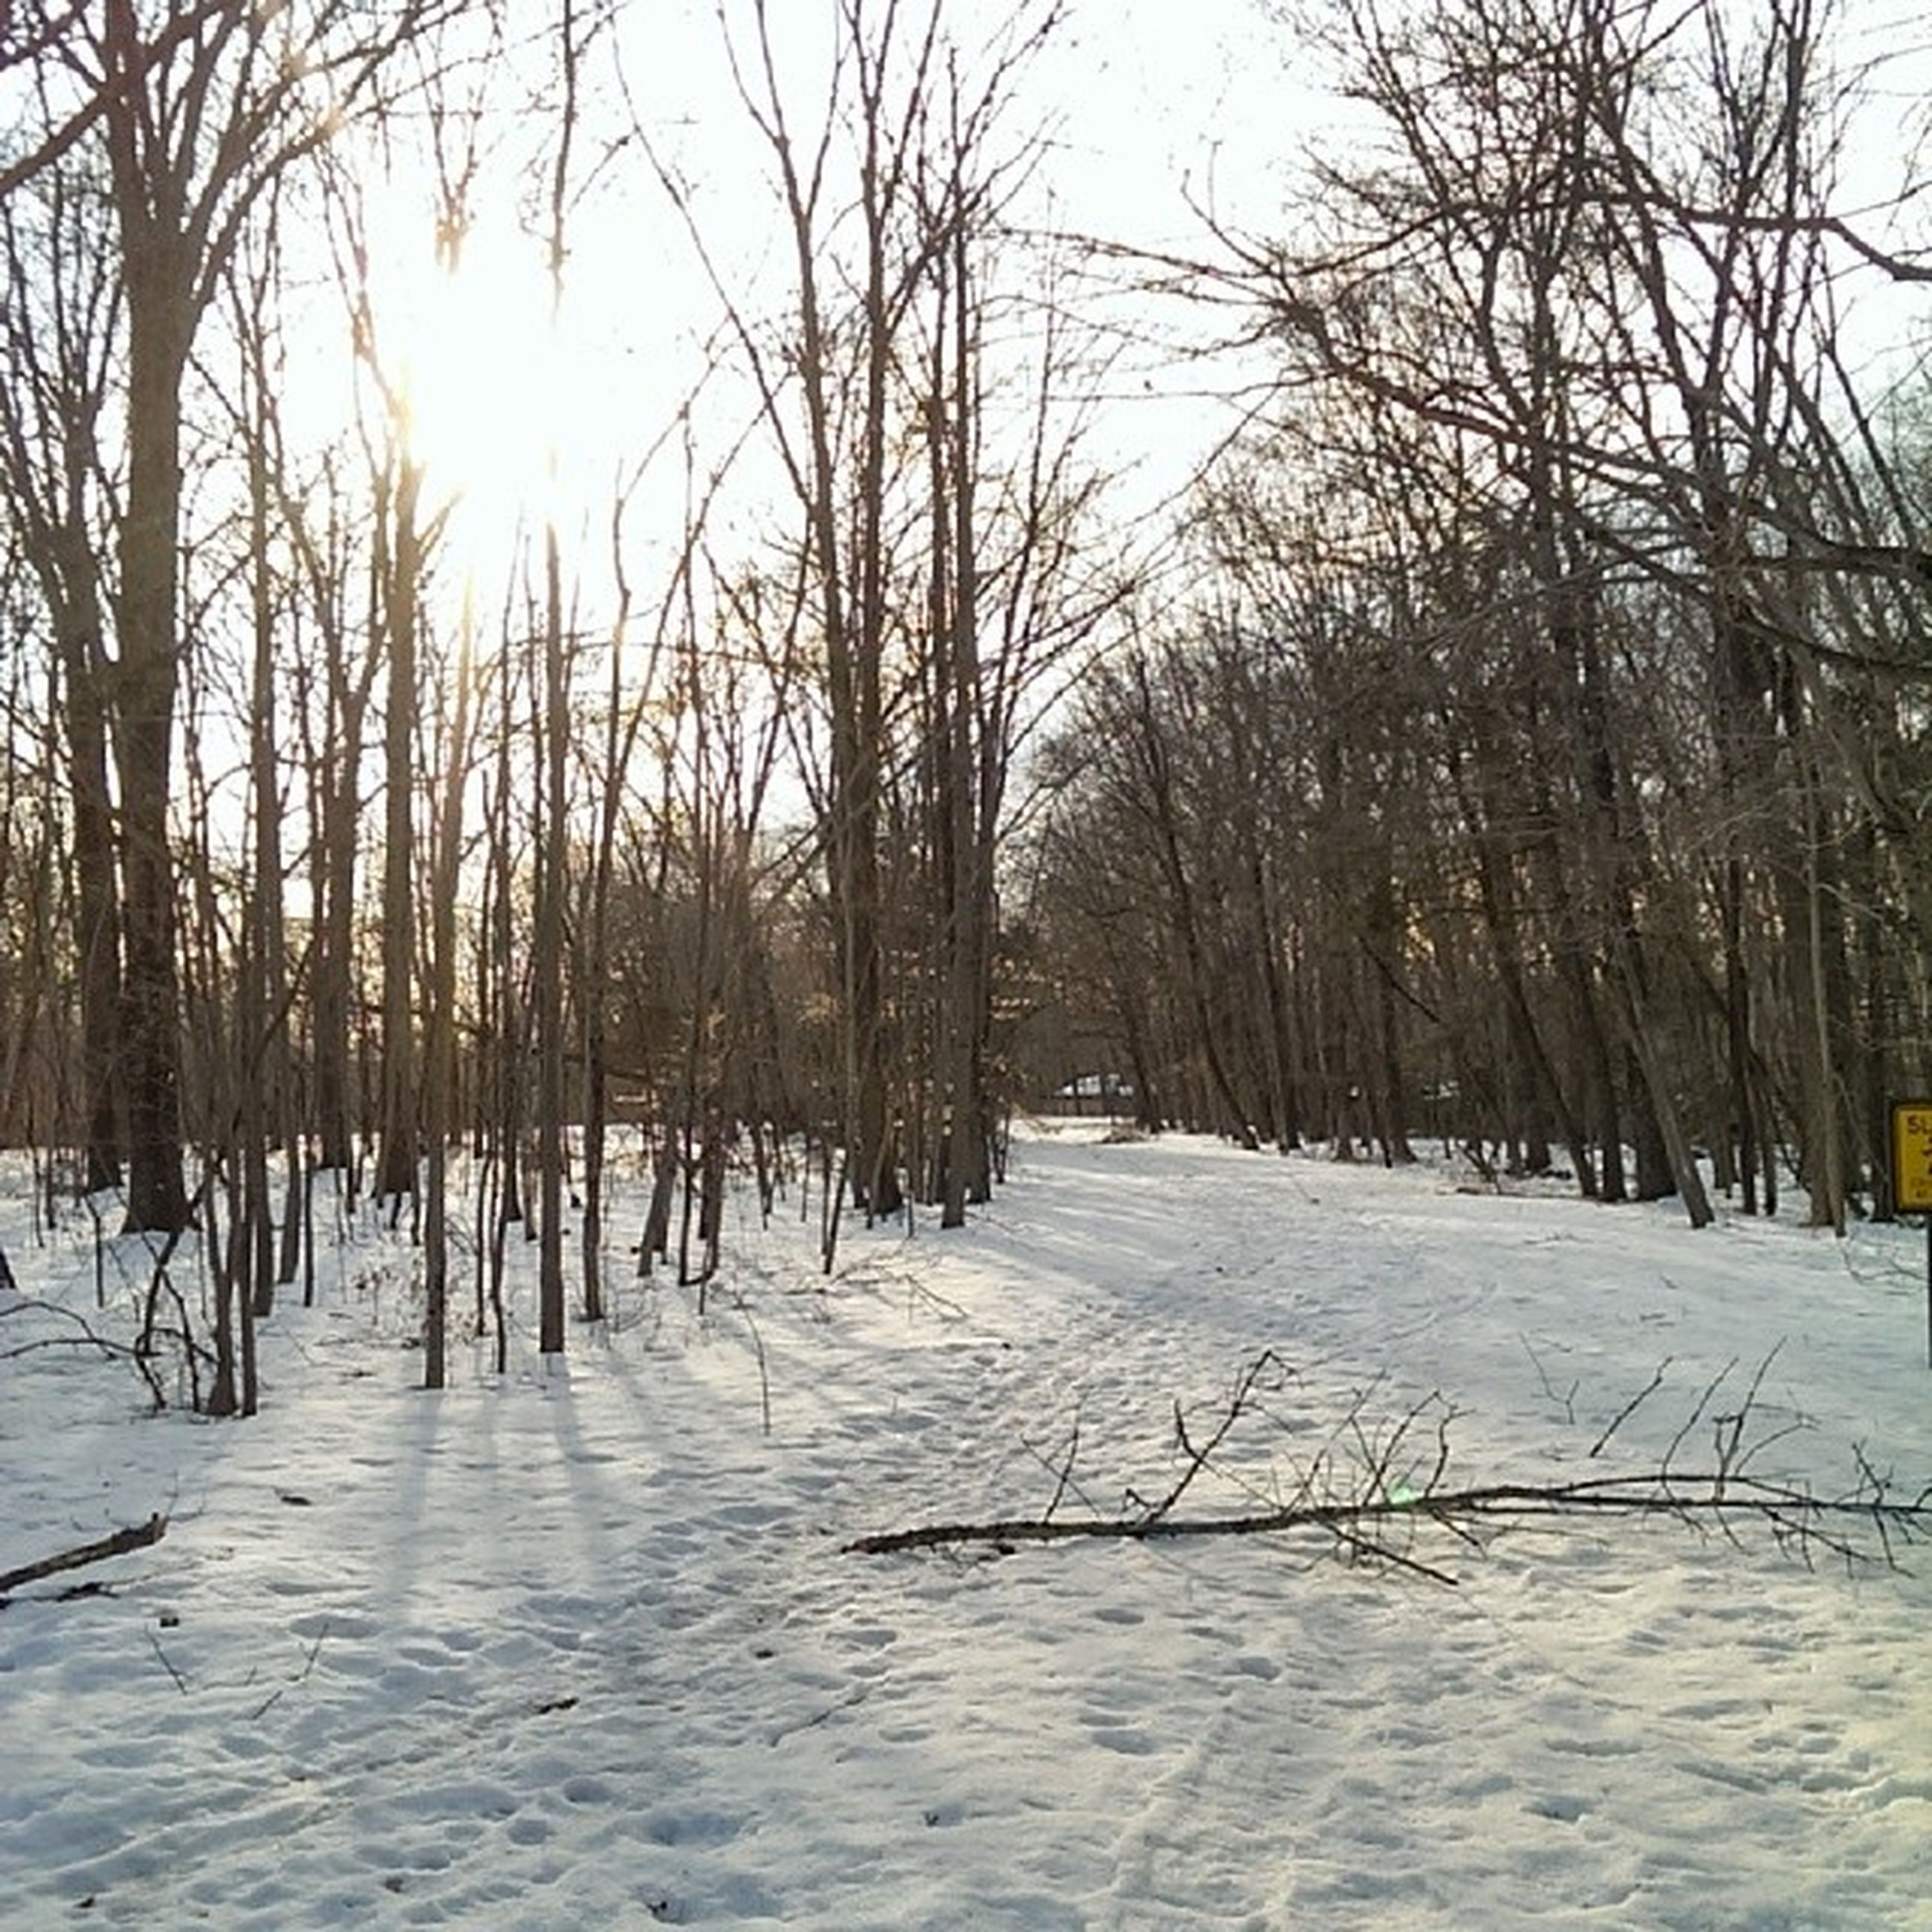 snow, winter, tree, cold temperature, bare tree, season, tranquility, nature, weather, tranquil scene, branch, frozen, tree trunk, covering, treelined, beauty in nature, sunlight, scenics, sky, sun